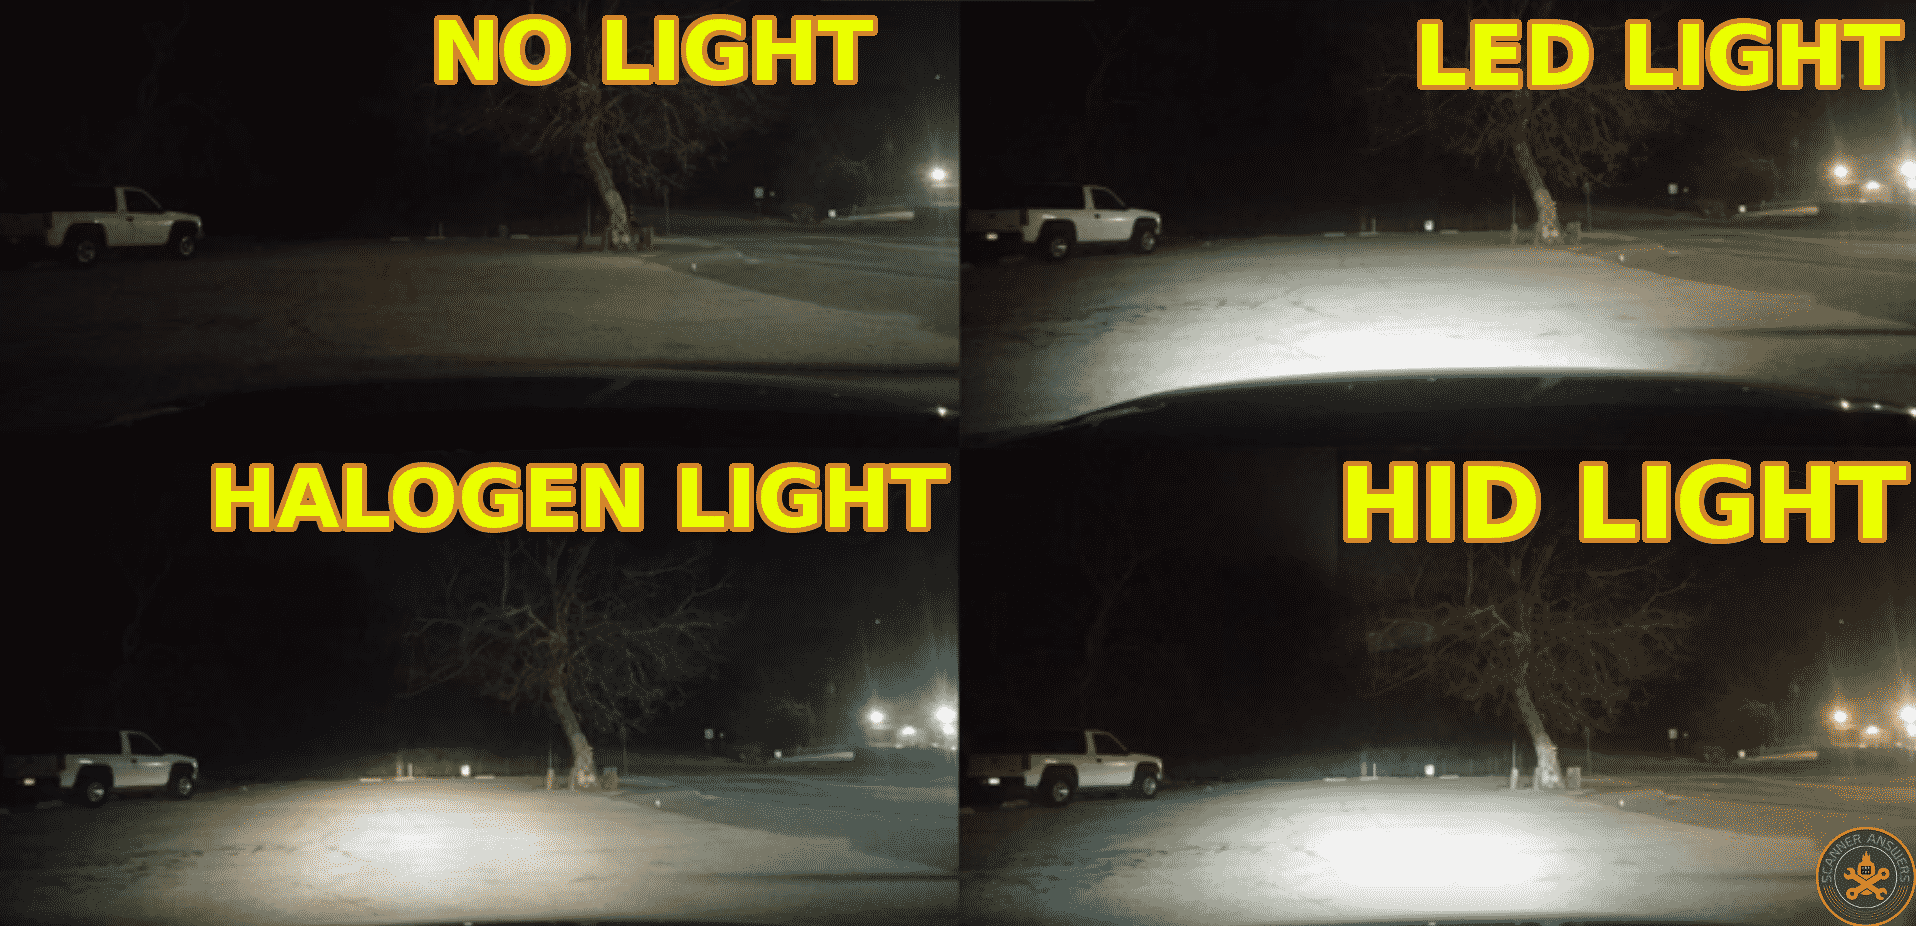 HID vs LED vs Halogen lumens